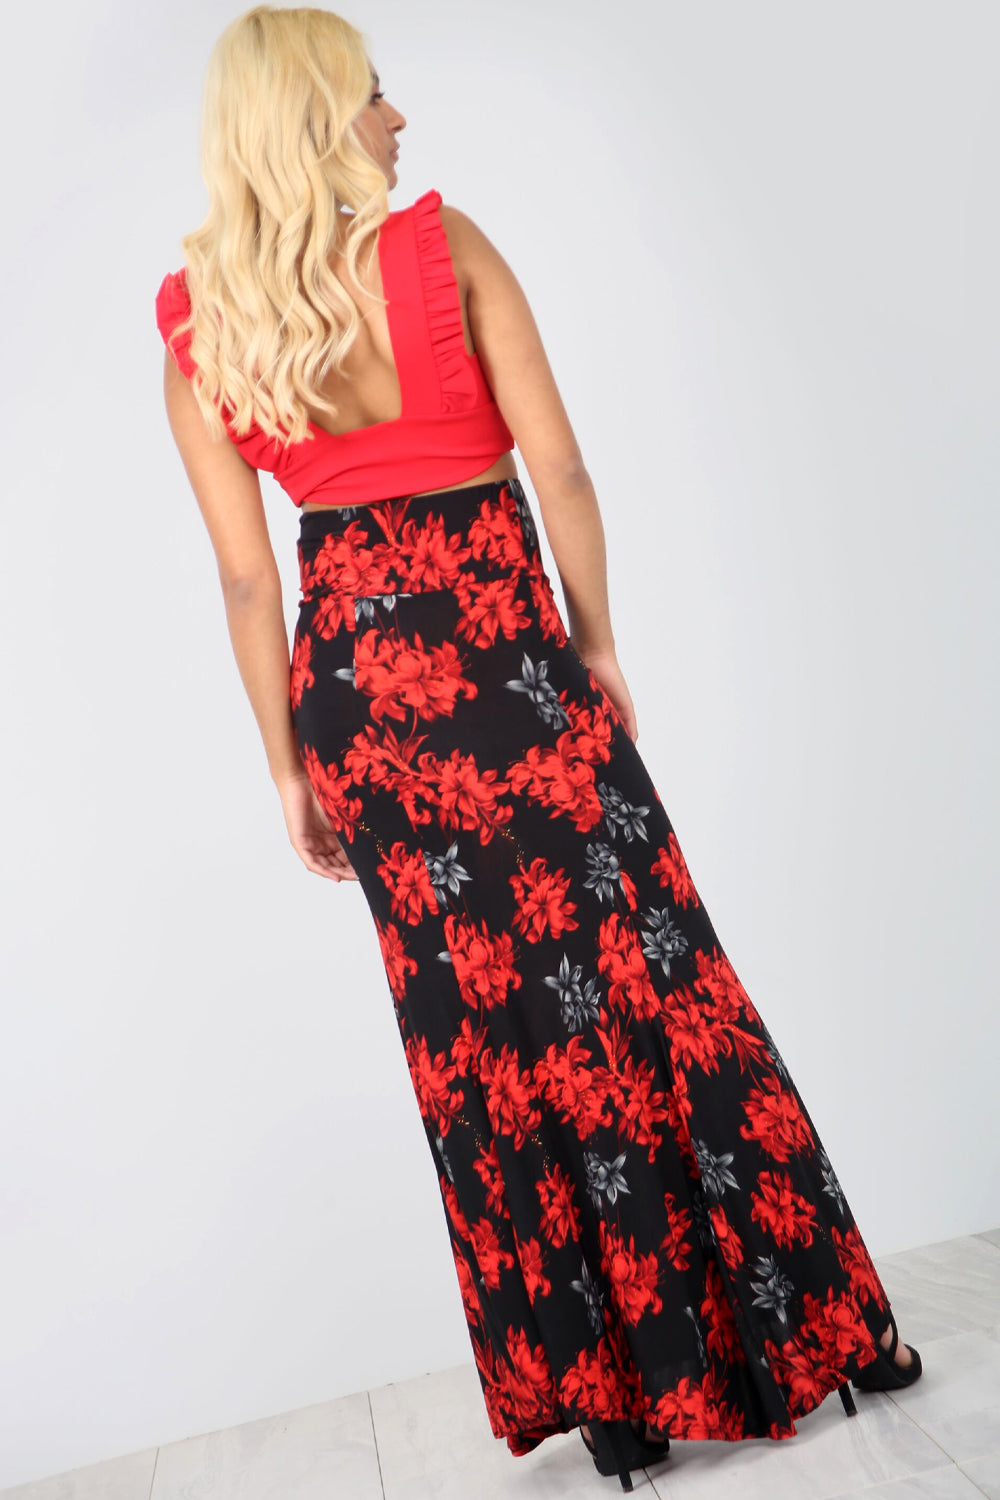 High Waist Red Floral Fish Tail Maxi Skirt - bejealous-com